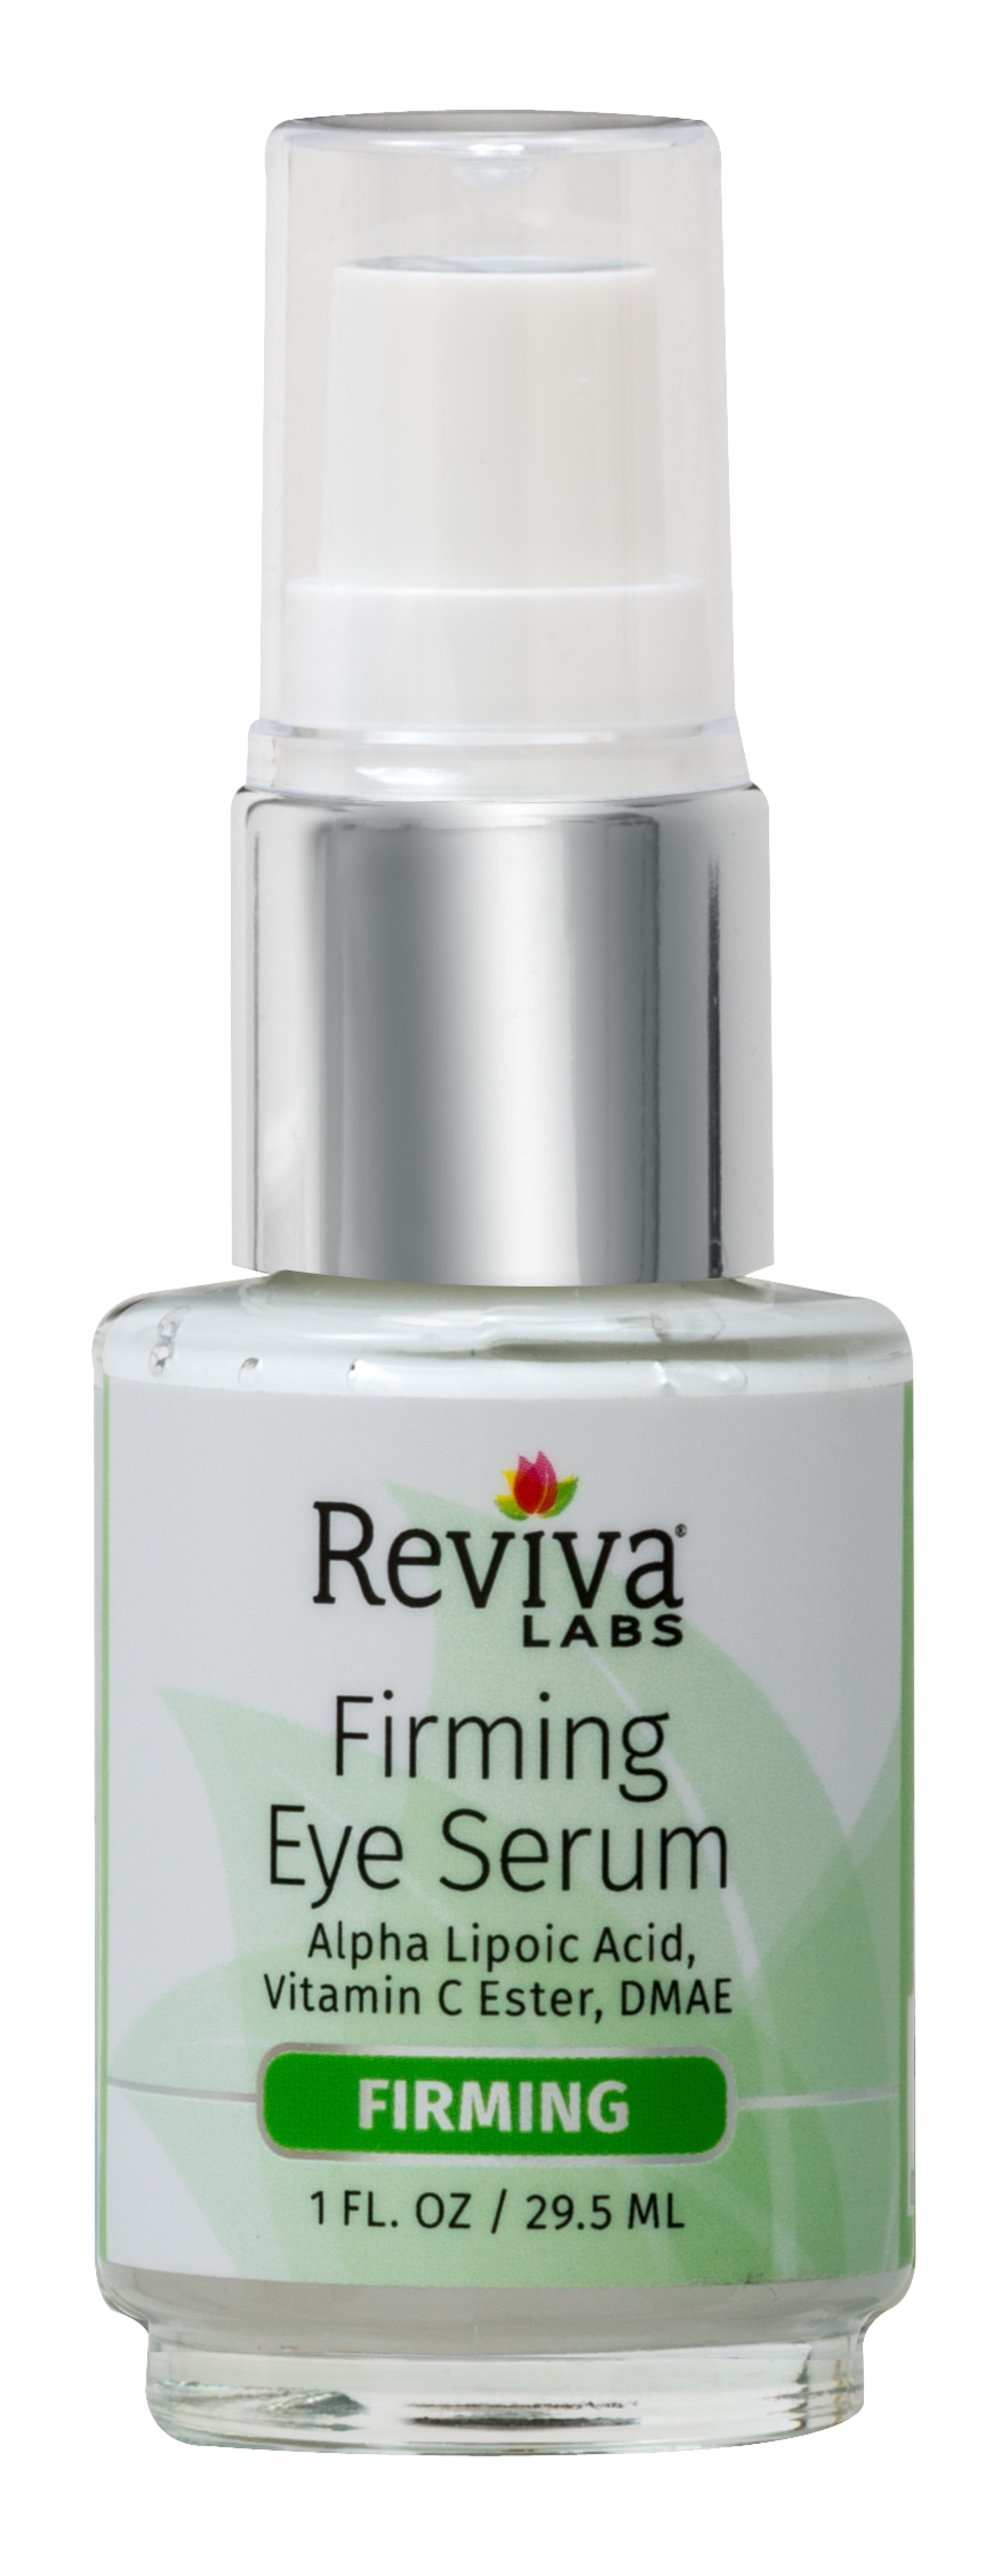 Reviva® Labs Firming Eye Serum <p><strong>From the Manufacturer's Label:</strong></p><p>Reviva Labs Firming Eye Serum has a special base and precise blending, penetrates the thin skin around eyes for  quick absorption. <br /></p><p><strong></strong></p><p>Manufactured by  Reviva® Labs.</p> 1 oz Serum  $11.99